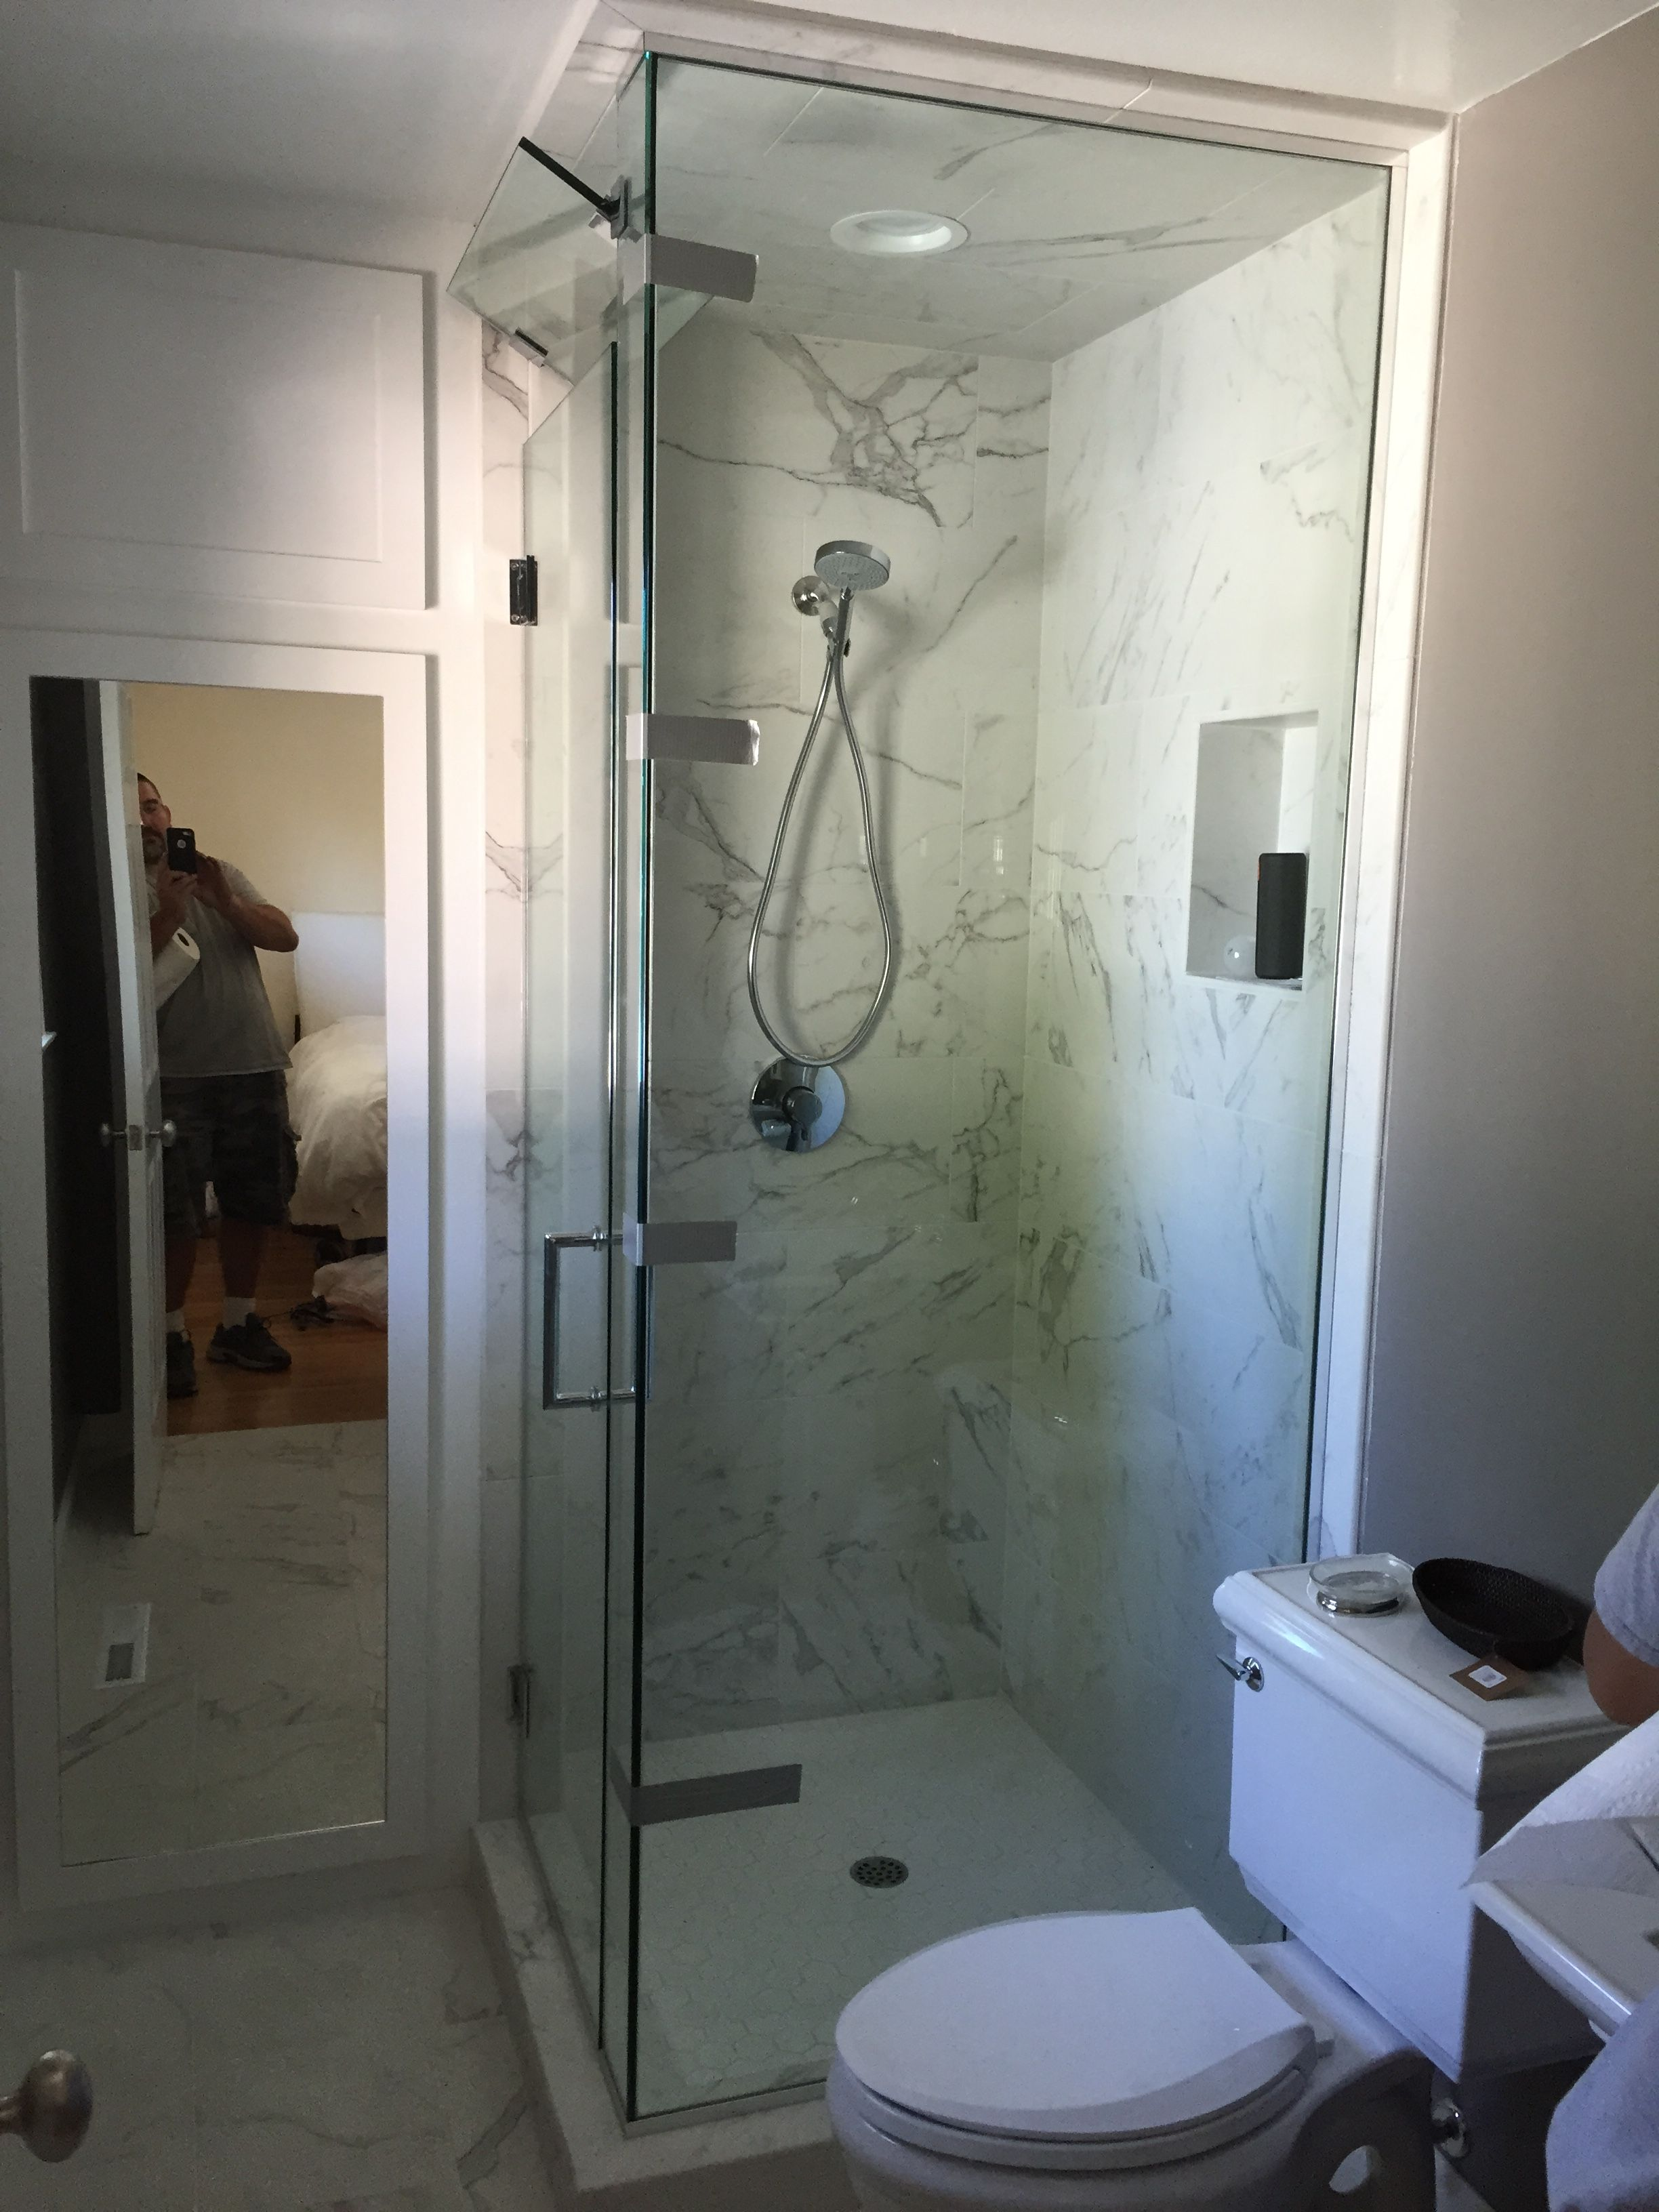 This frameless floor to ceiling glass shower enclosure has a glass transom above the door that opens to vent steam when bathing.  Installed in Santa Rosa, CA.